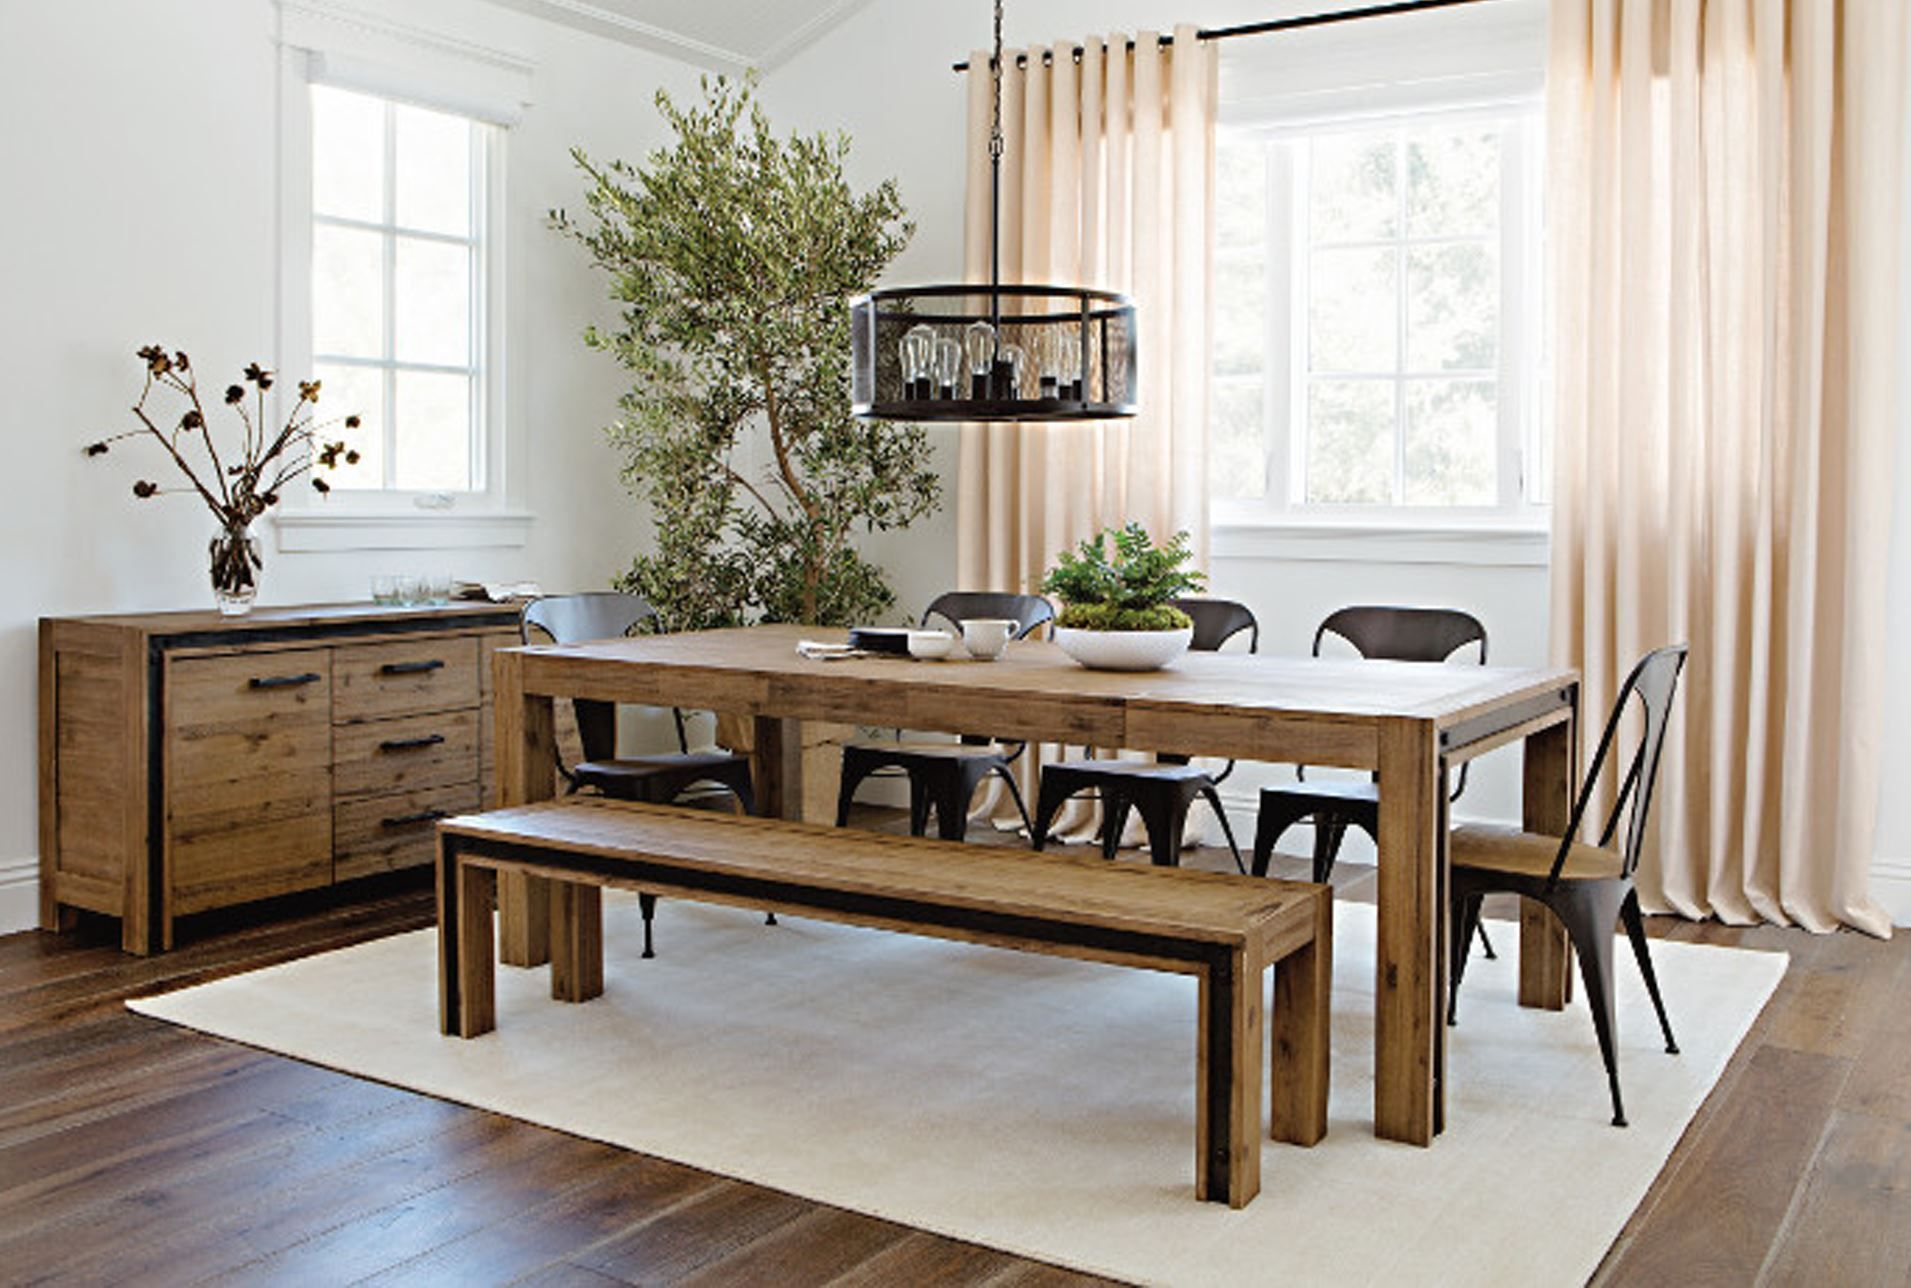 Amos Extension Dining Table | Living spaces, Dining and Spaces